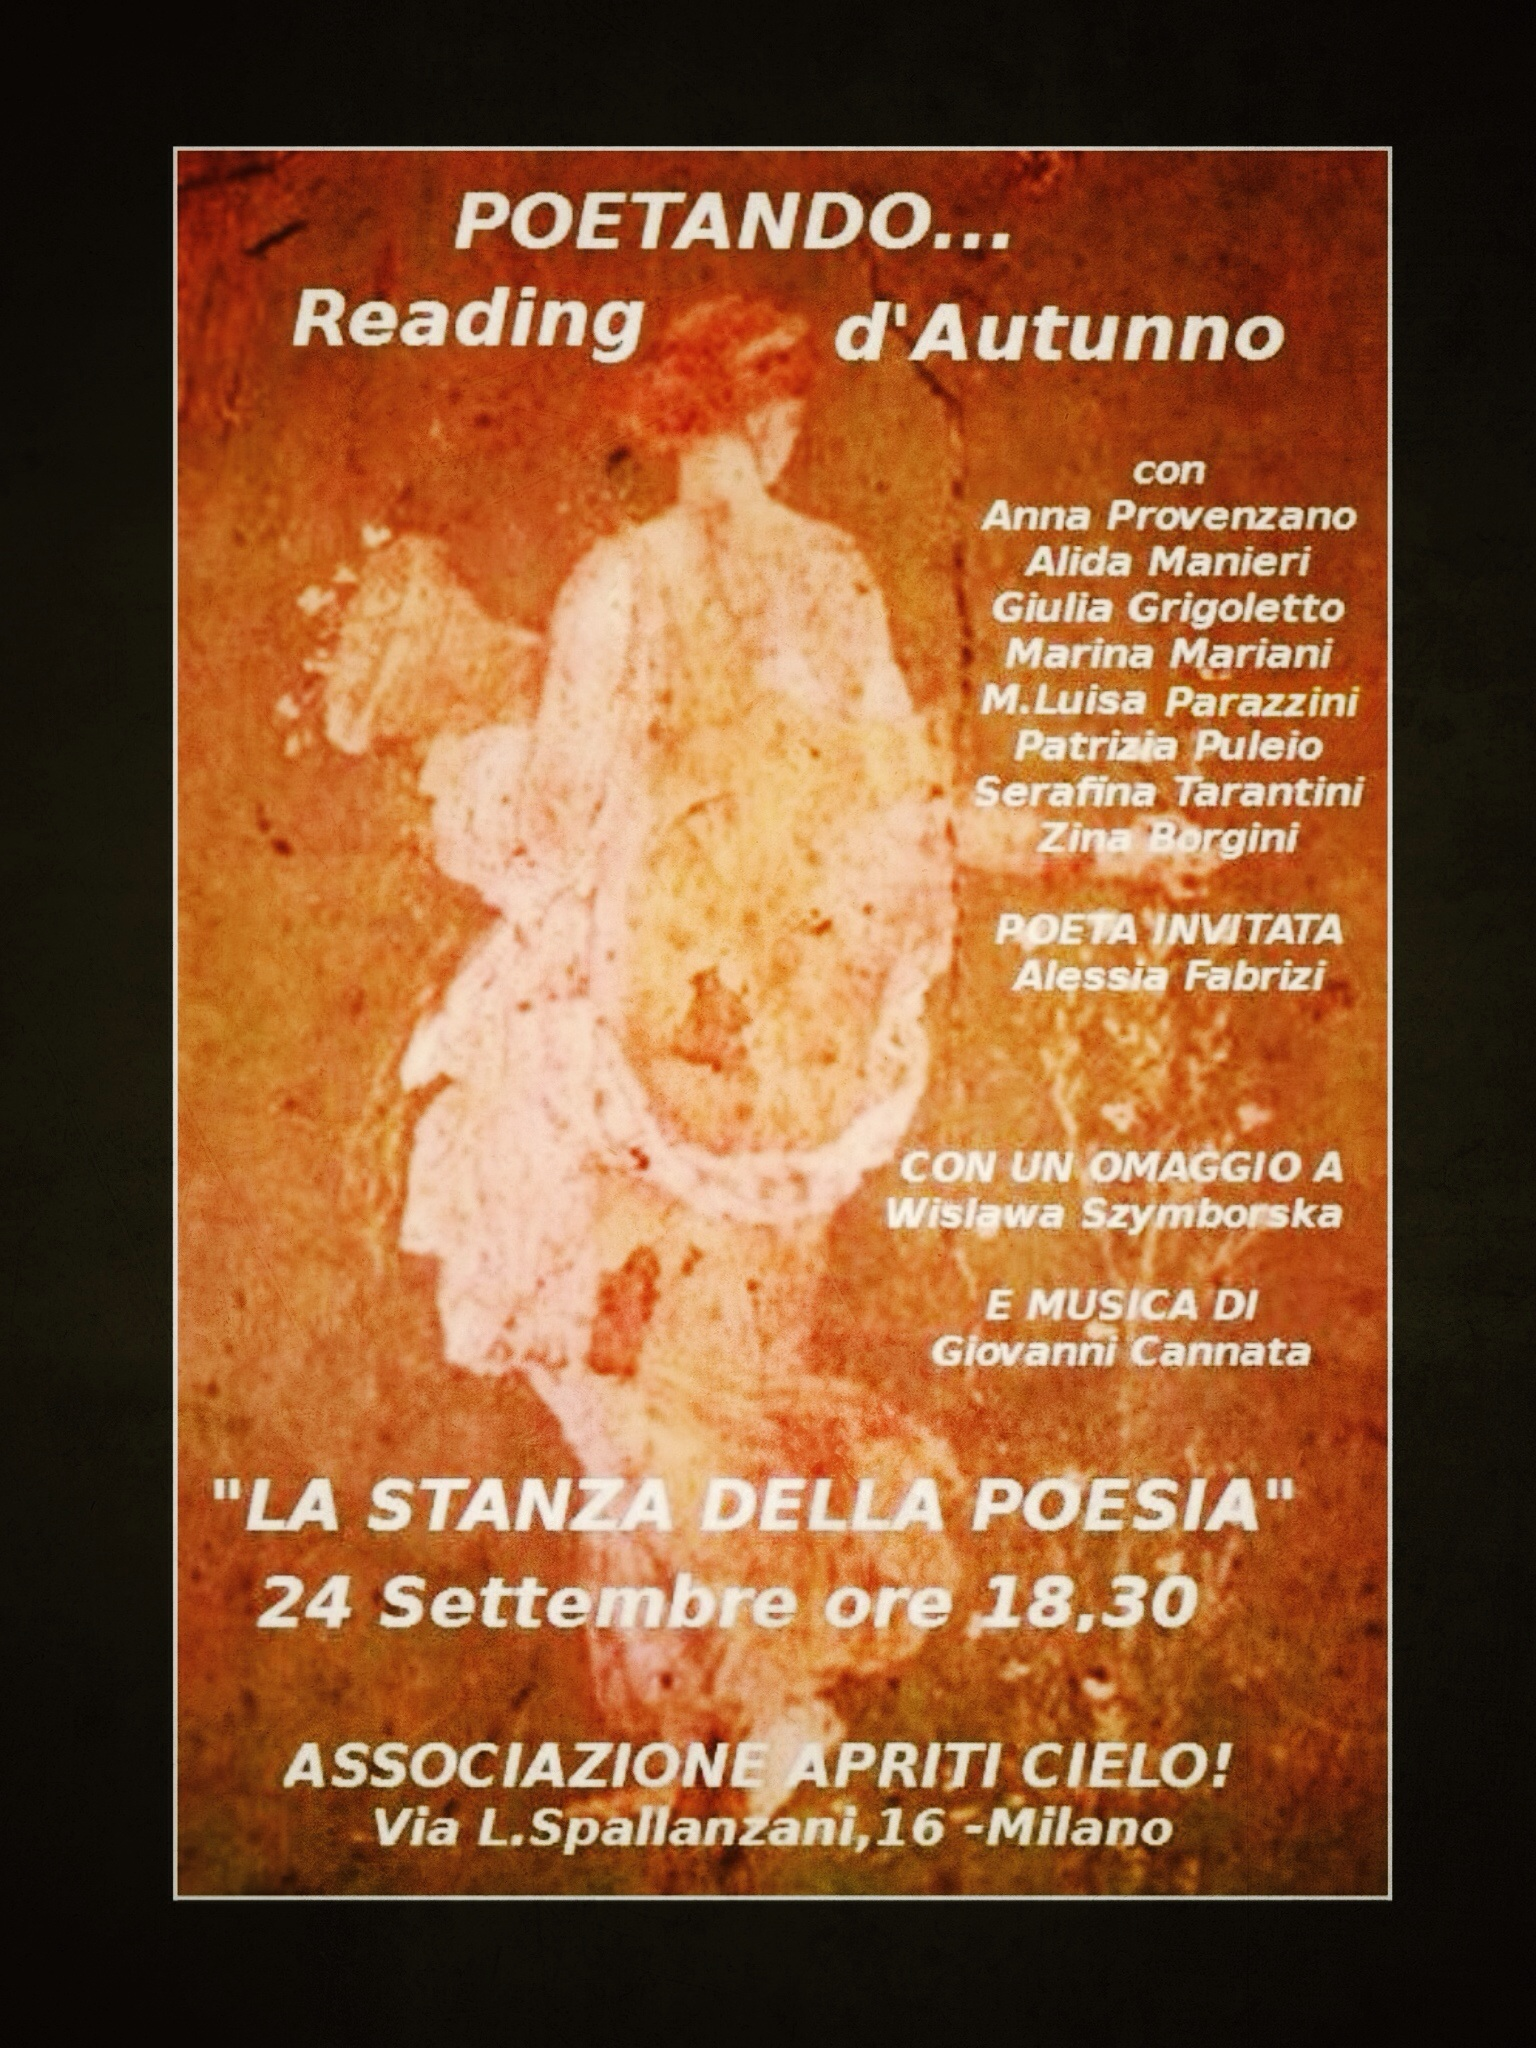 Poetando…Reading d'Autunno